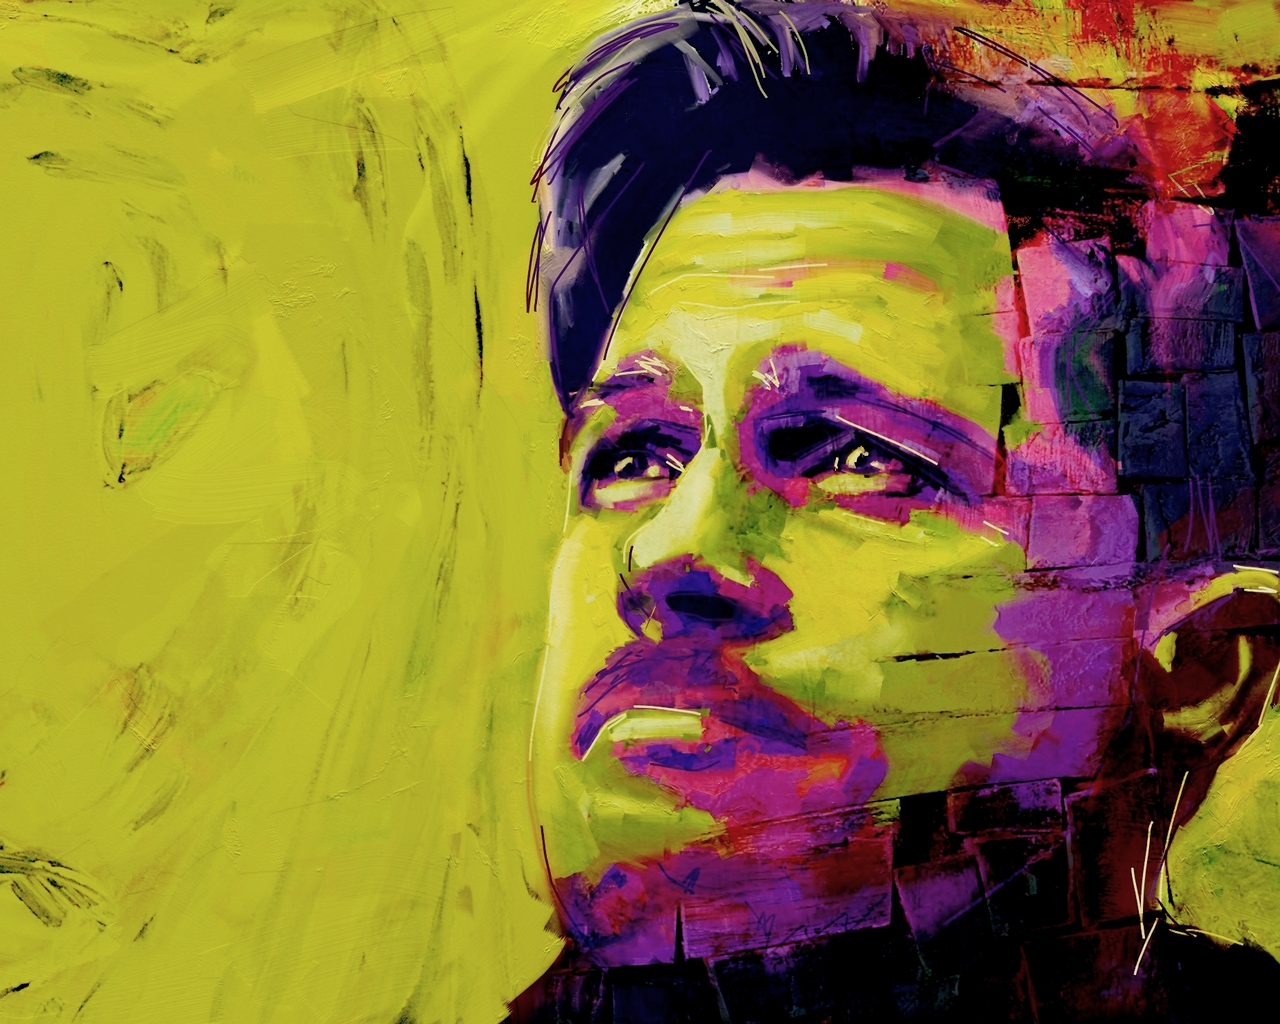 Brad Pitt Painting for 1280 x 1024 resolution